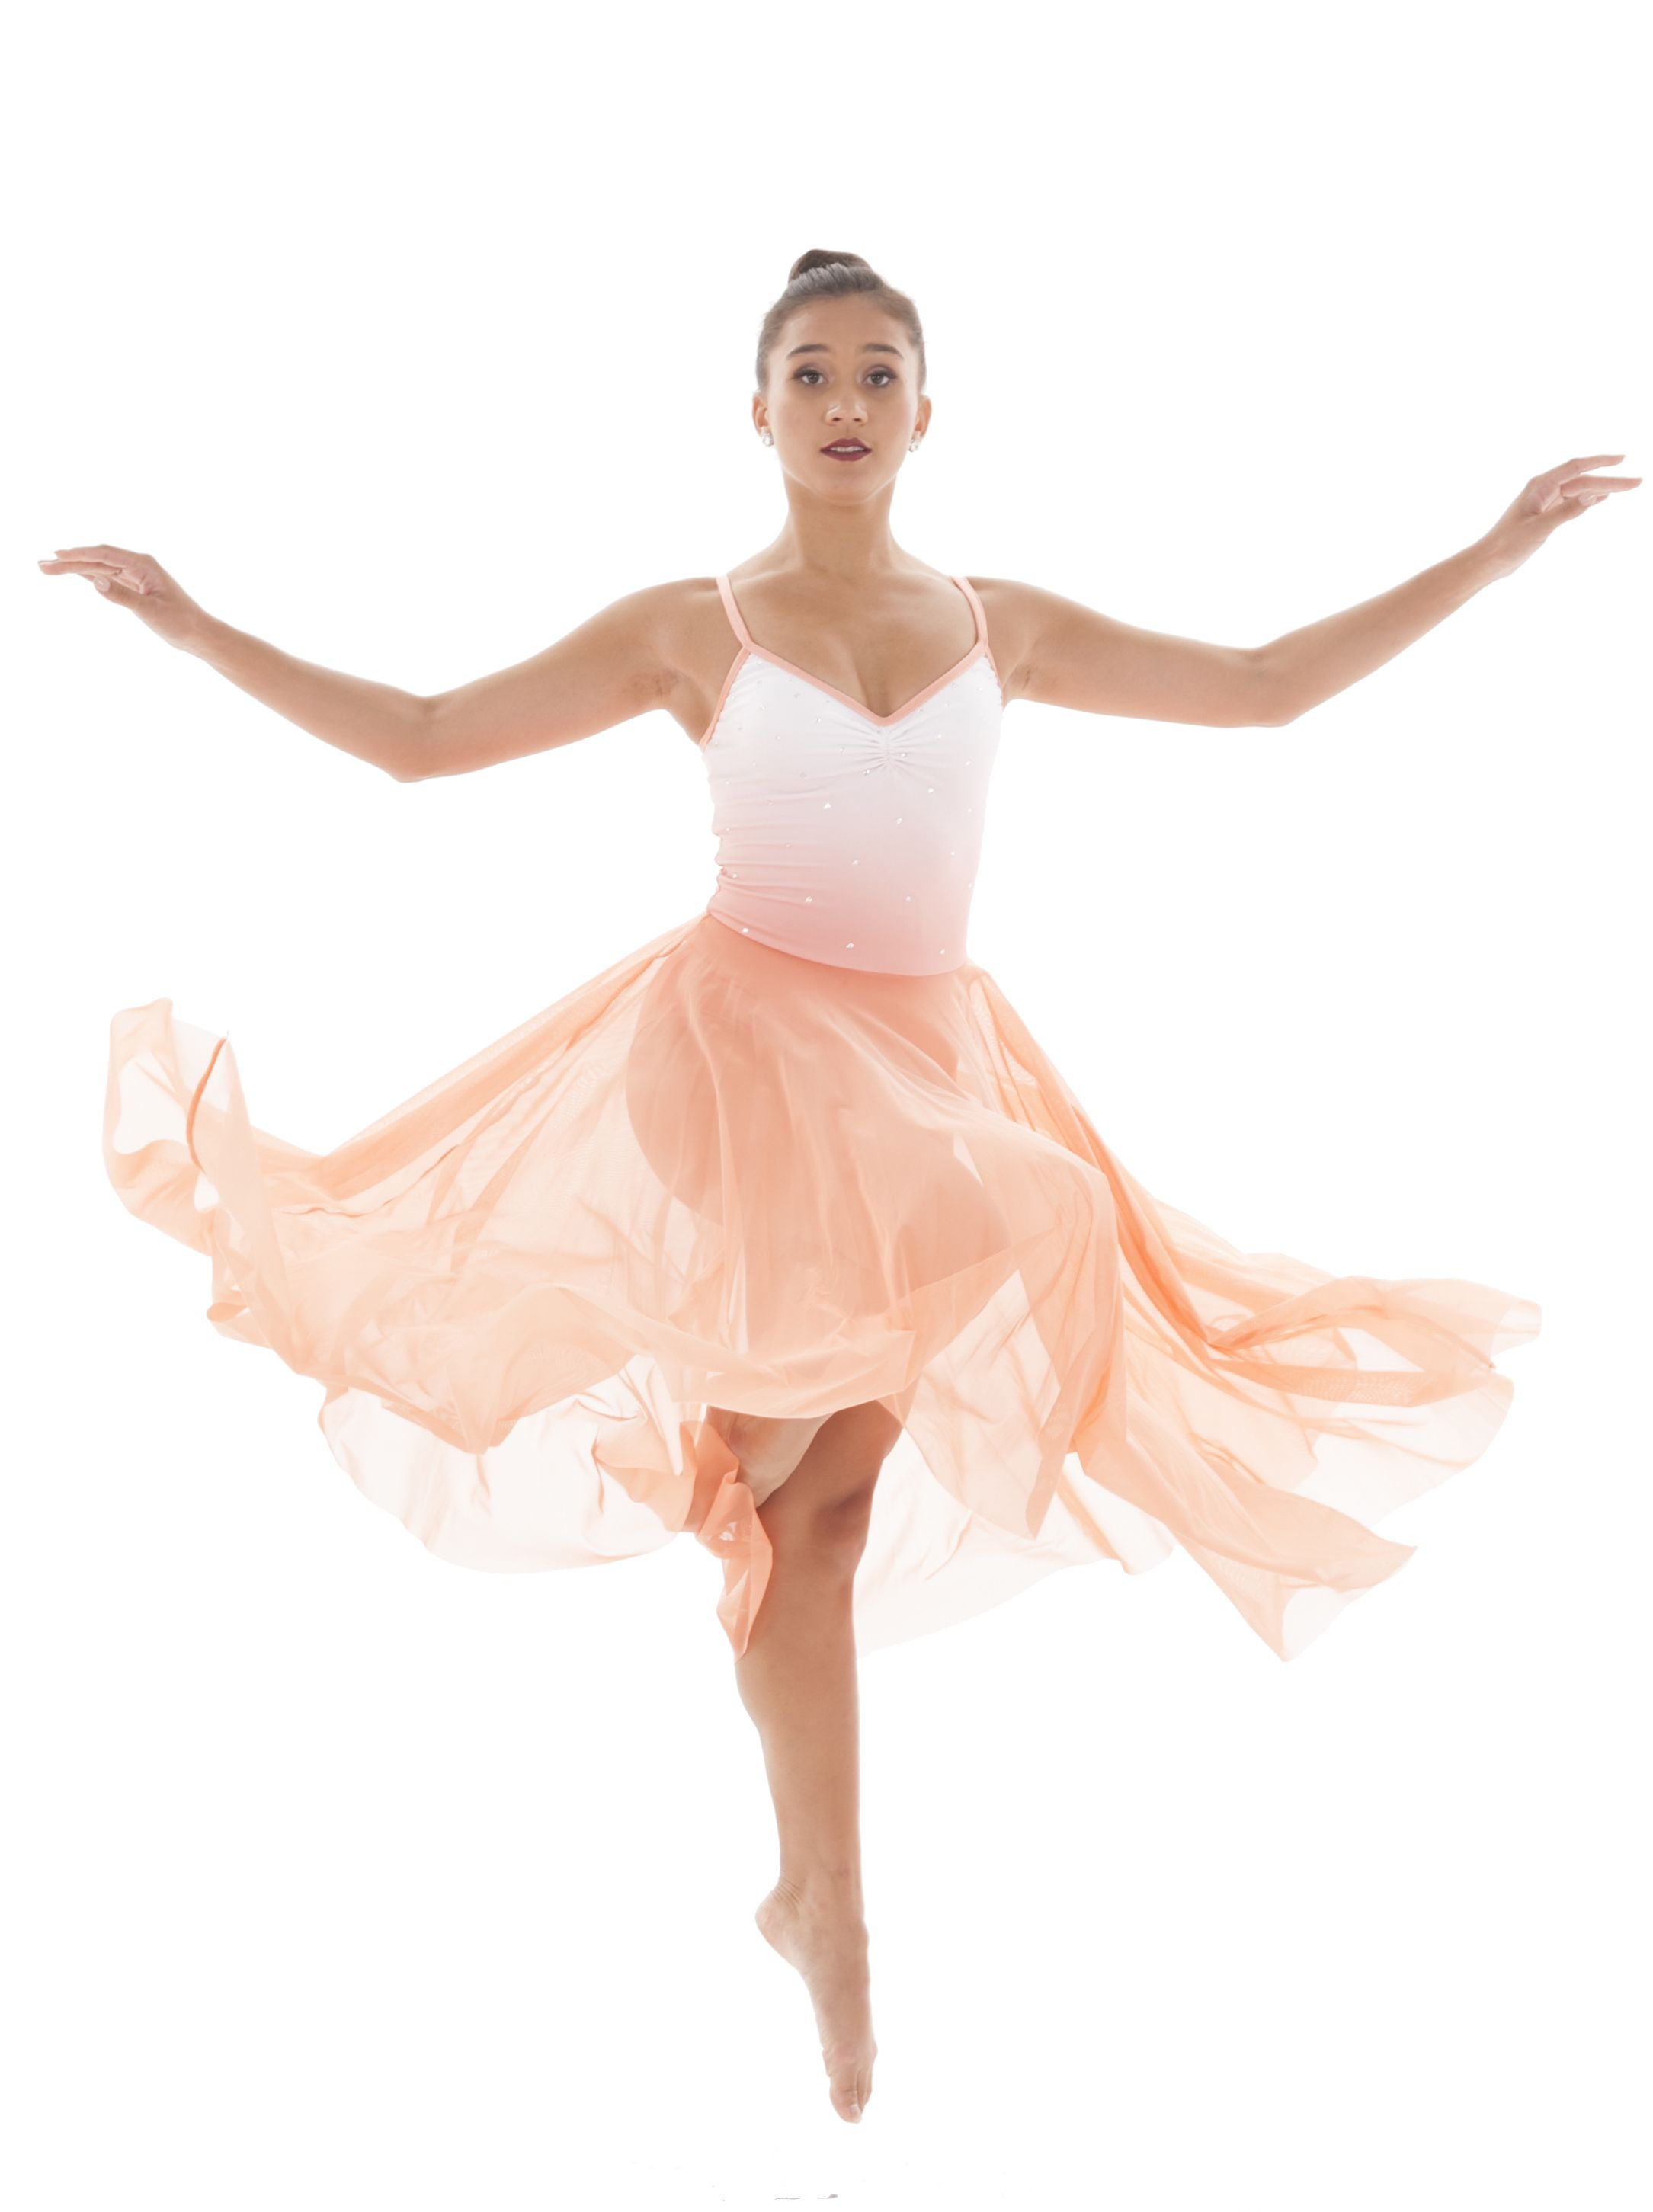 a6e14833a Long flowy skirt with leotard. Gorgeous dress. Perfect for a lyrical dance  costume. Can be any color! Ombre Prism. Ballet. Lyrical. Contemporary.